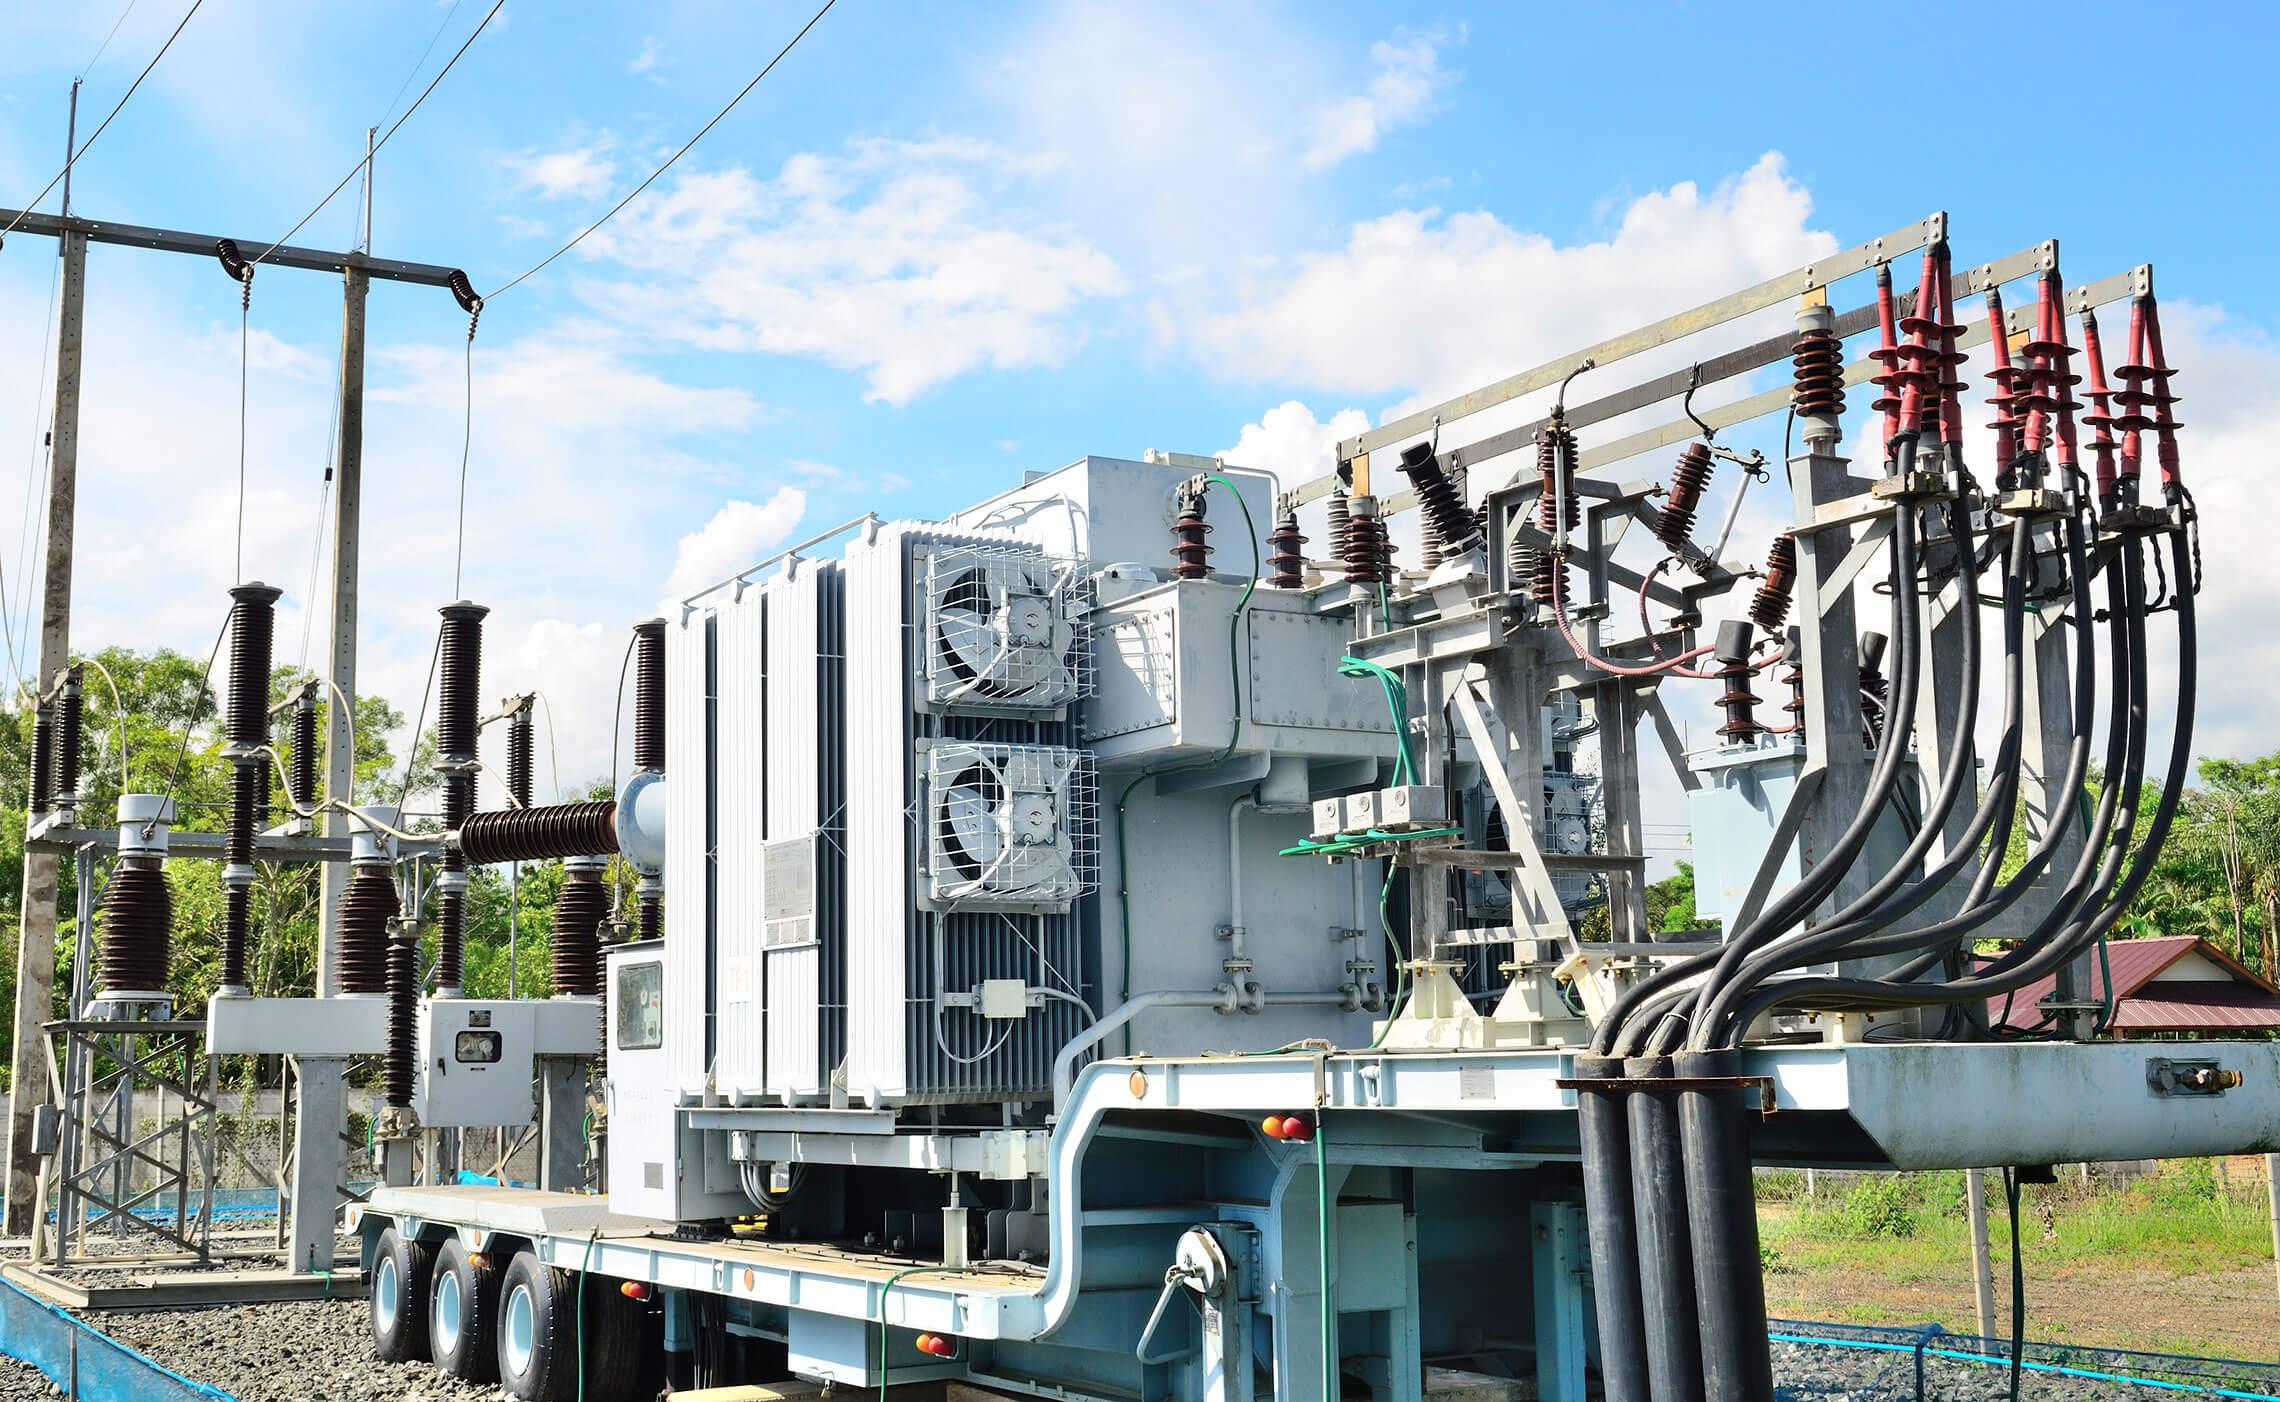 Power transformer testing and power analysis solutions